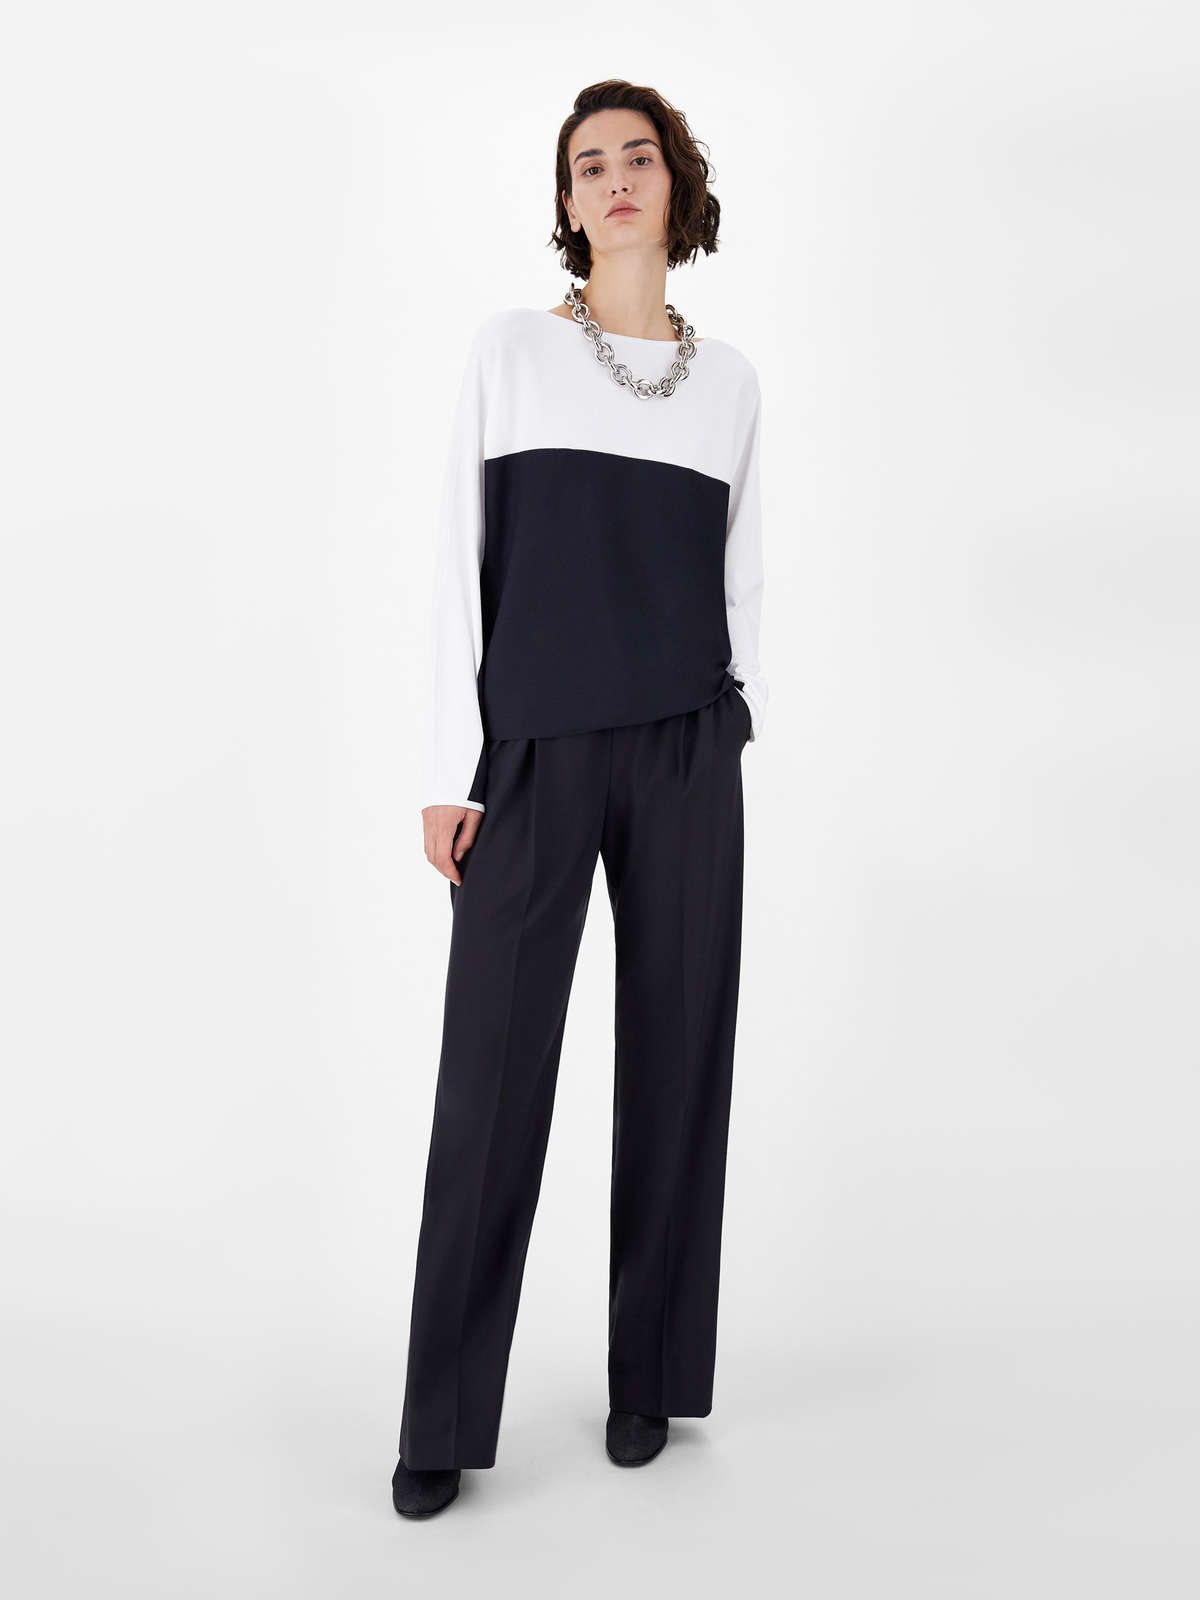 Crepe viscose yarn sweater - Max Mara